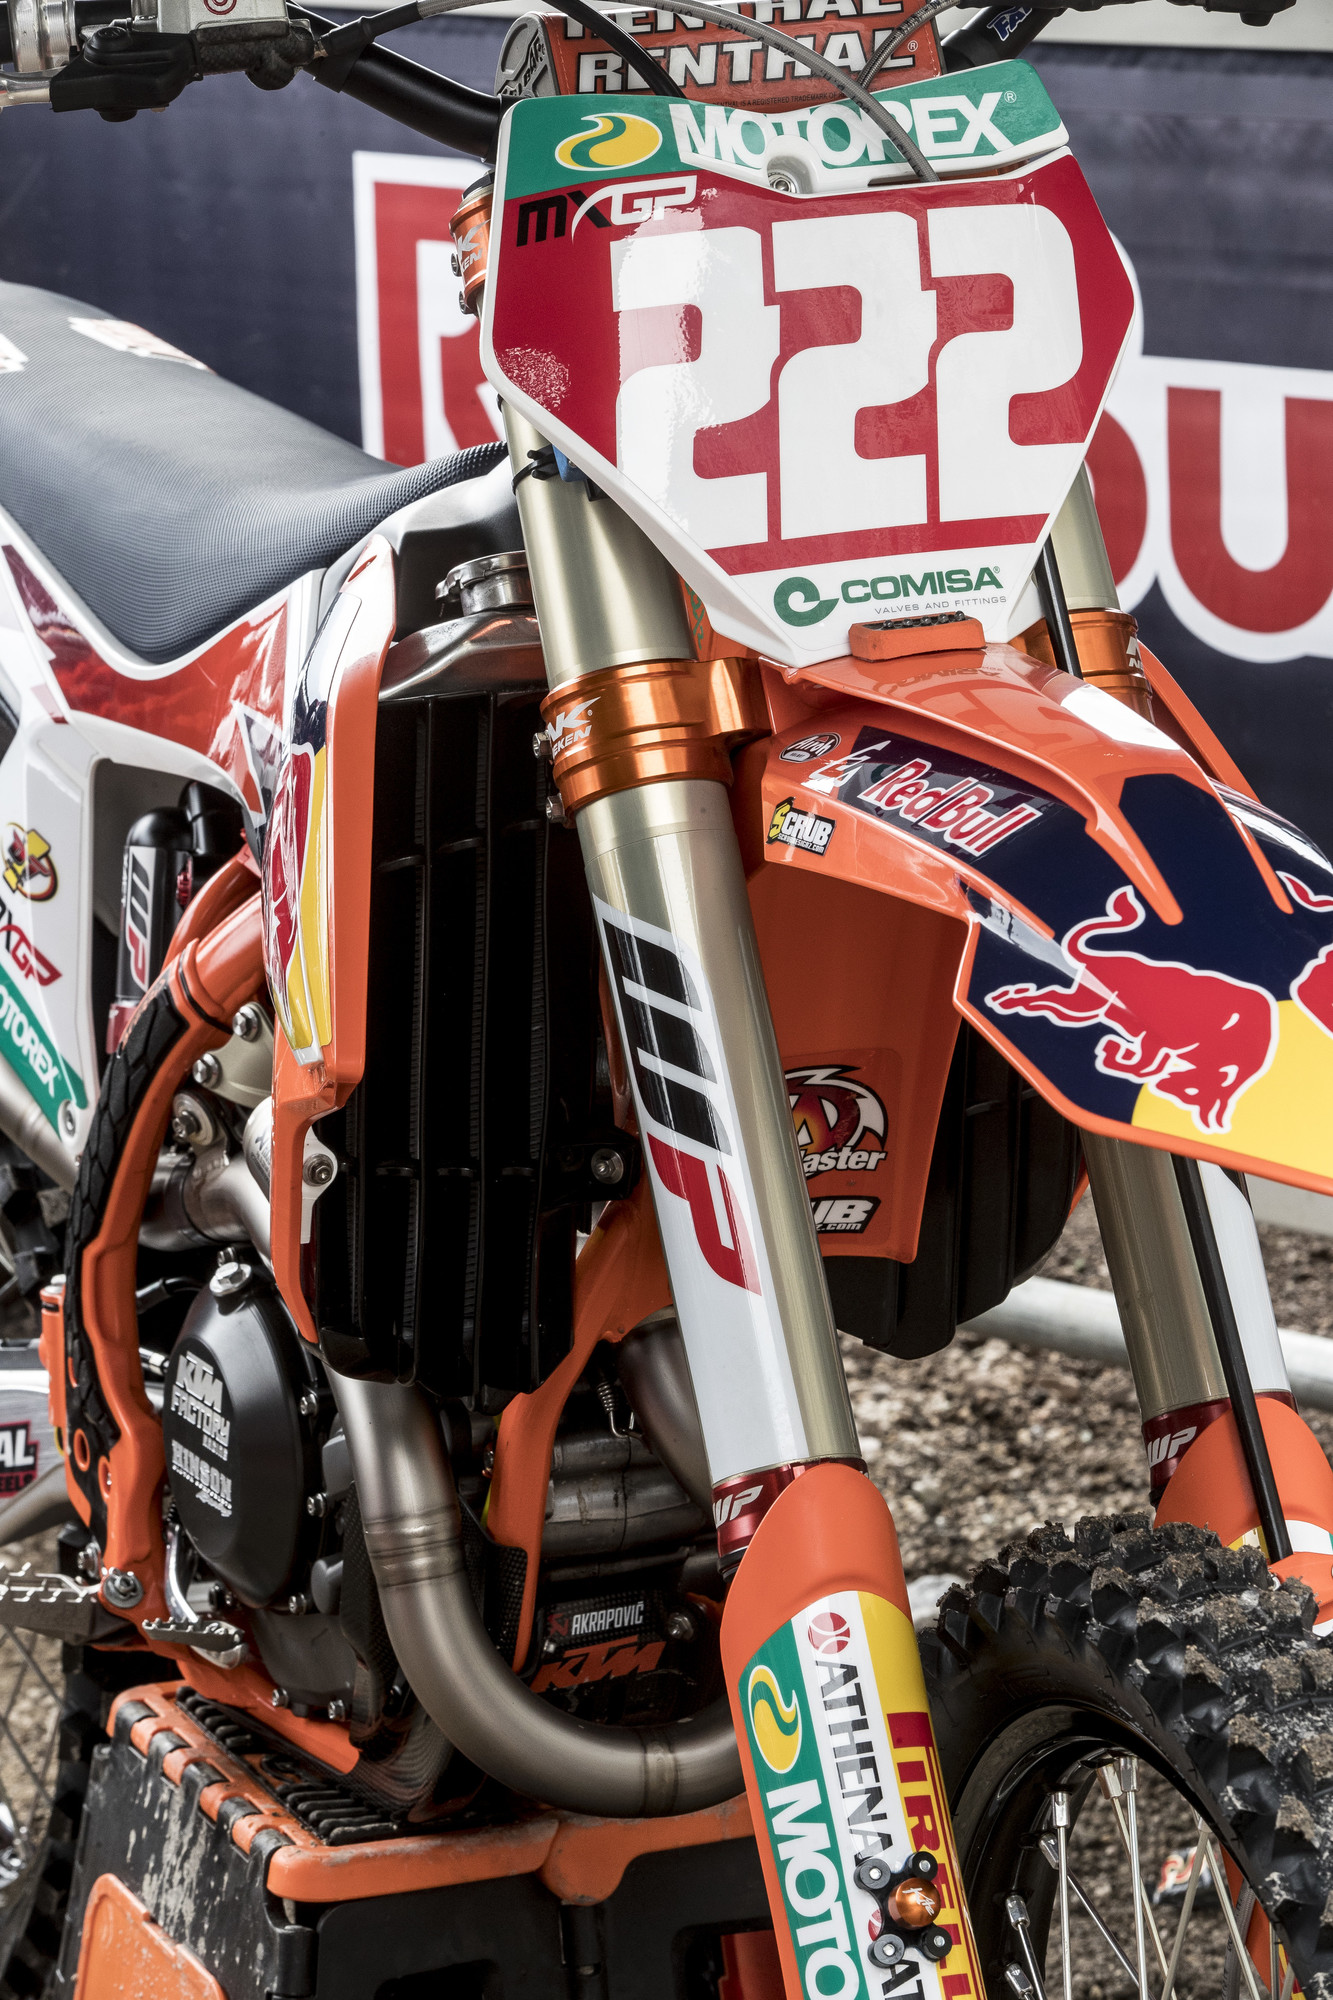 A closer look at the front of Cairoli's bike shows that he runs different Neken triple clamps than the US KTM team. The bottom edge of the lower clamp runs straight across rather than having a curved cutout.